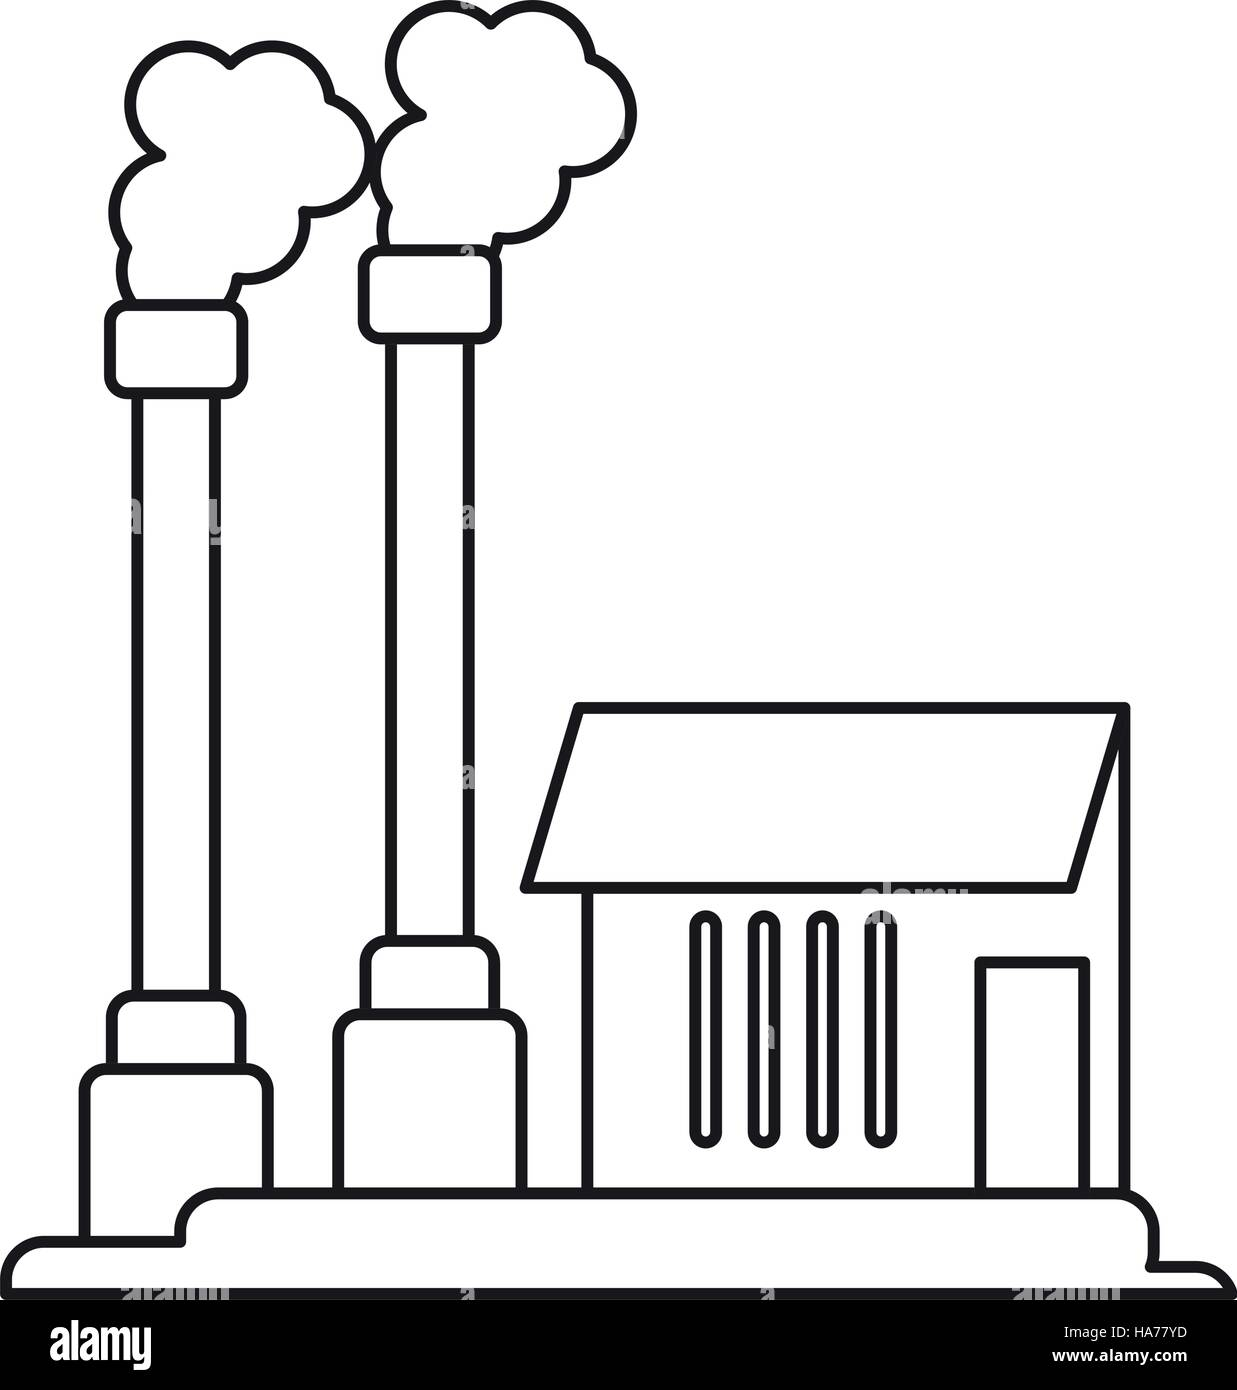 industrial factory buiding pollution symbol pictograph - Stock Image